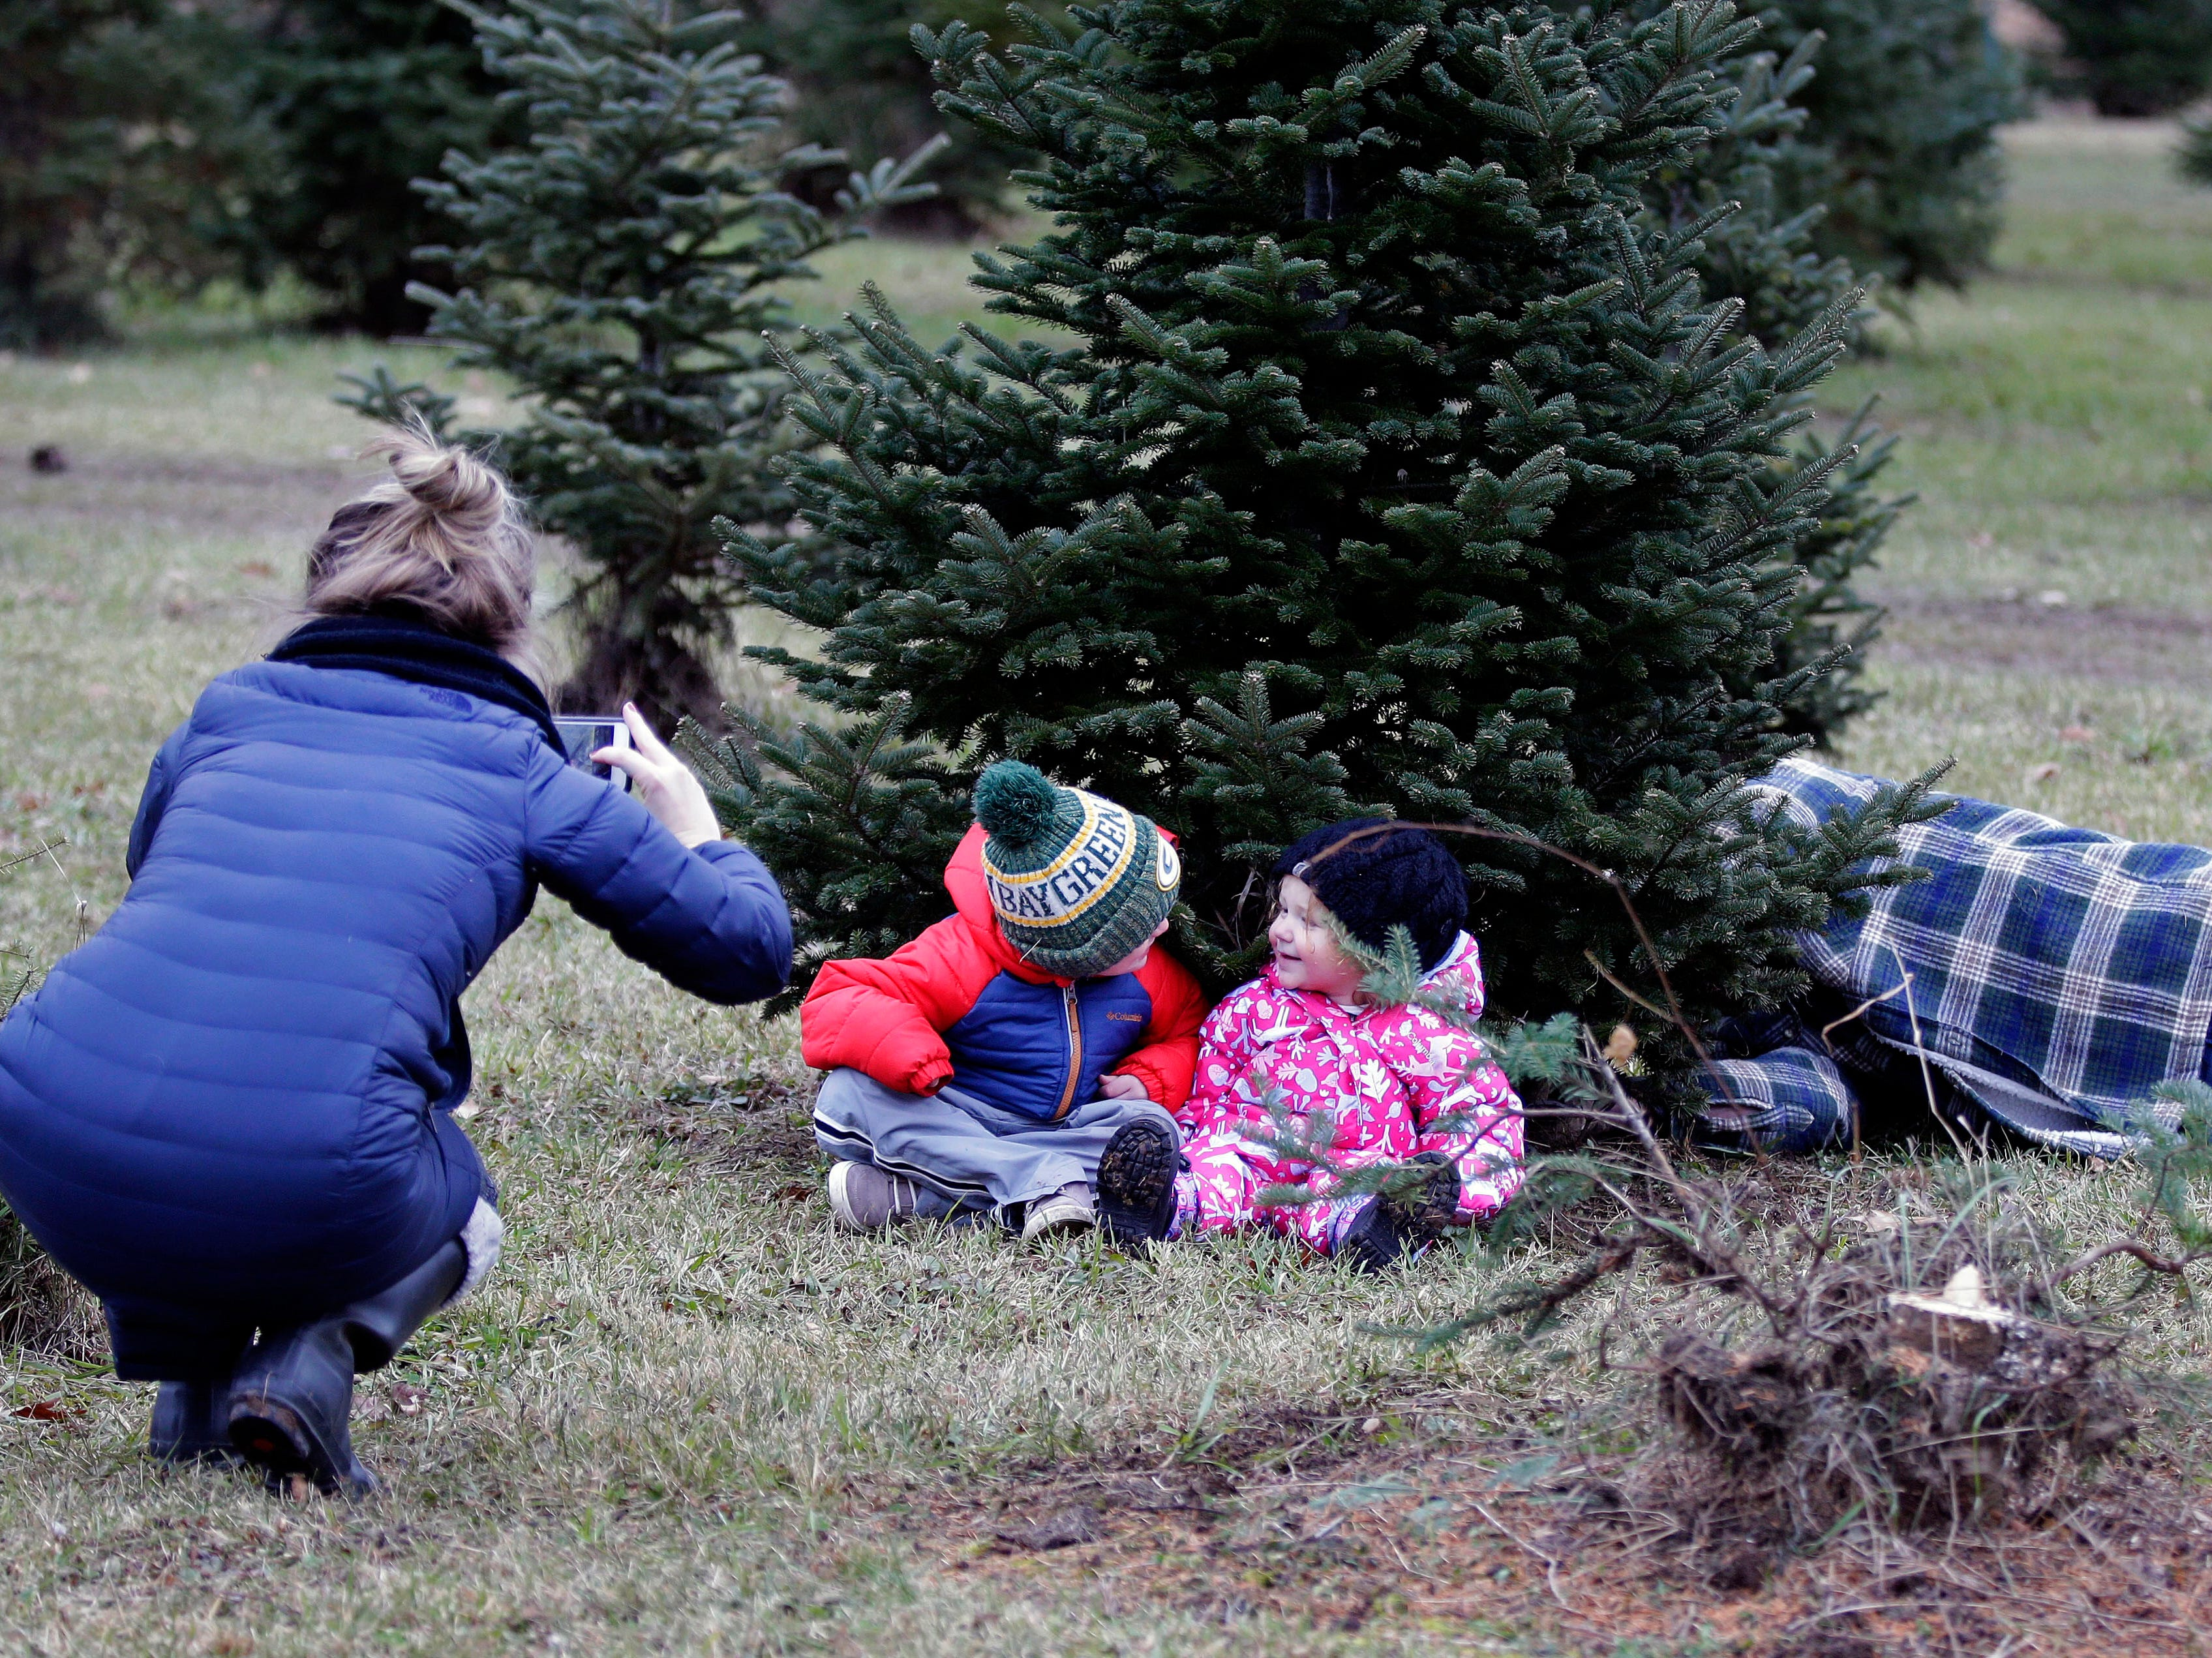 Kirsten Van Asten, tries to record a family moment with her children, Jack and Ivy, but Jack is more interested in watching his father, Brandon, cut the tree down Sunday, November 25, 2018, at the Mosquito Hill Tree Farm in New London, Wis.Ron Page/USA TODAY NETWORK-Wisconsin